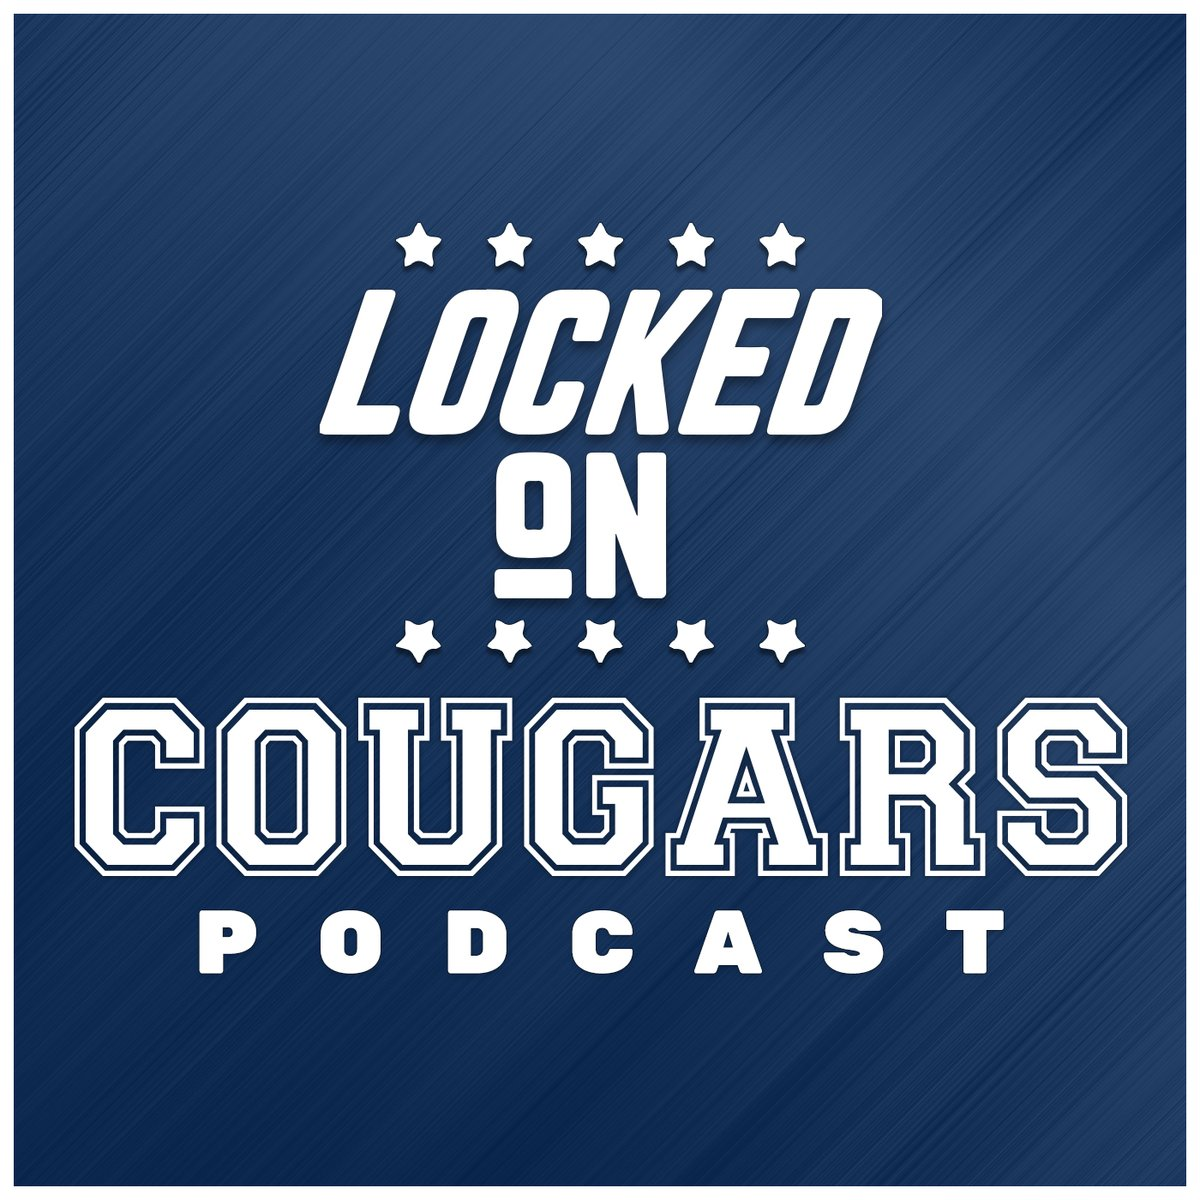 "#LockedOnCougars Podcast for Aug. 12  - #BYUfootball, should they play, has a unique opportunity in 2020  - Chatting one-on-one with ""The Viking"" @ChandonHerring   https://t.co/3n6OroSJGJ  Apple https://t.co/tPGDrnk9Wr  Spotify https://t.co/MVlUJatDV2  #BYU #GoCougs #LOC https://t.co/6aW1M4Dn4J"